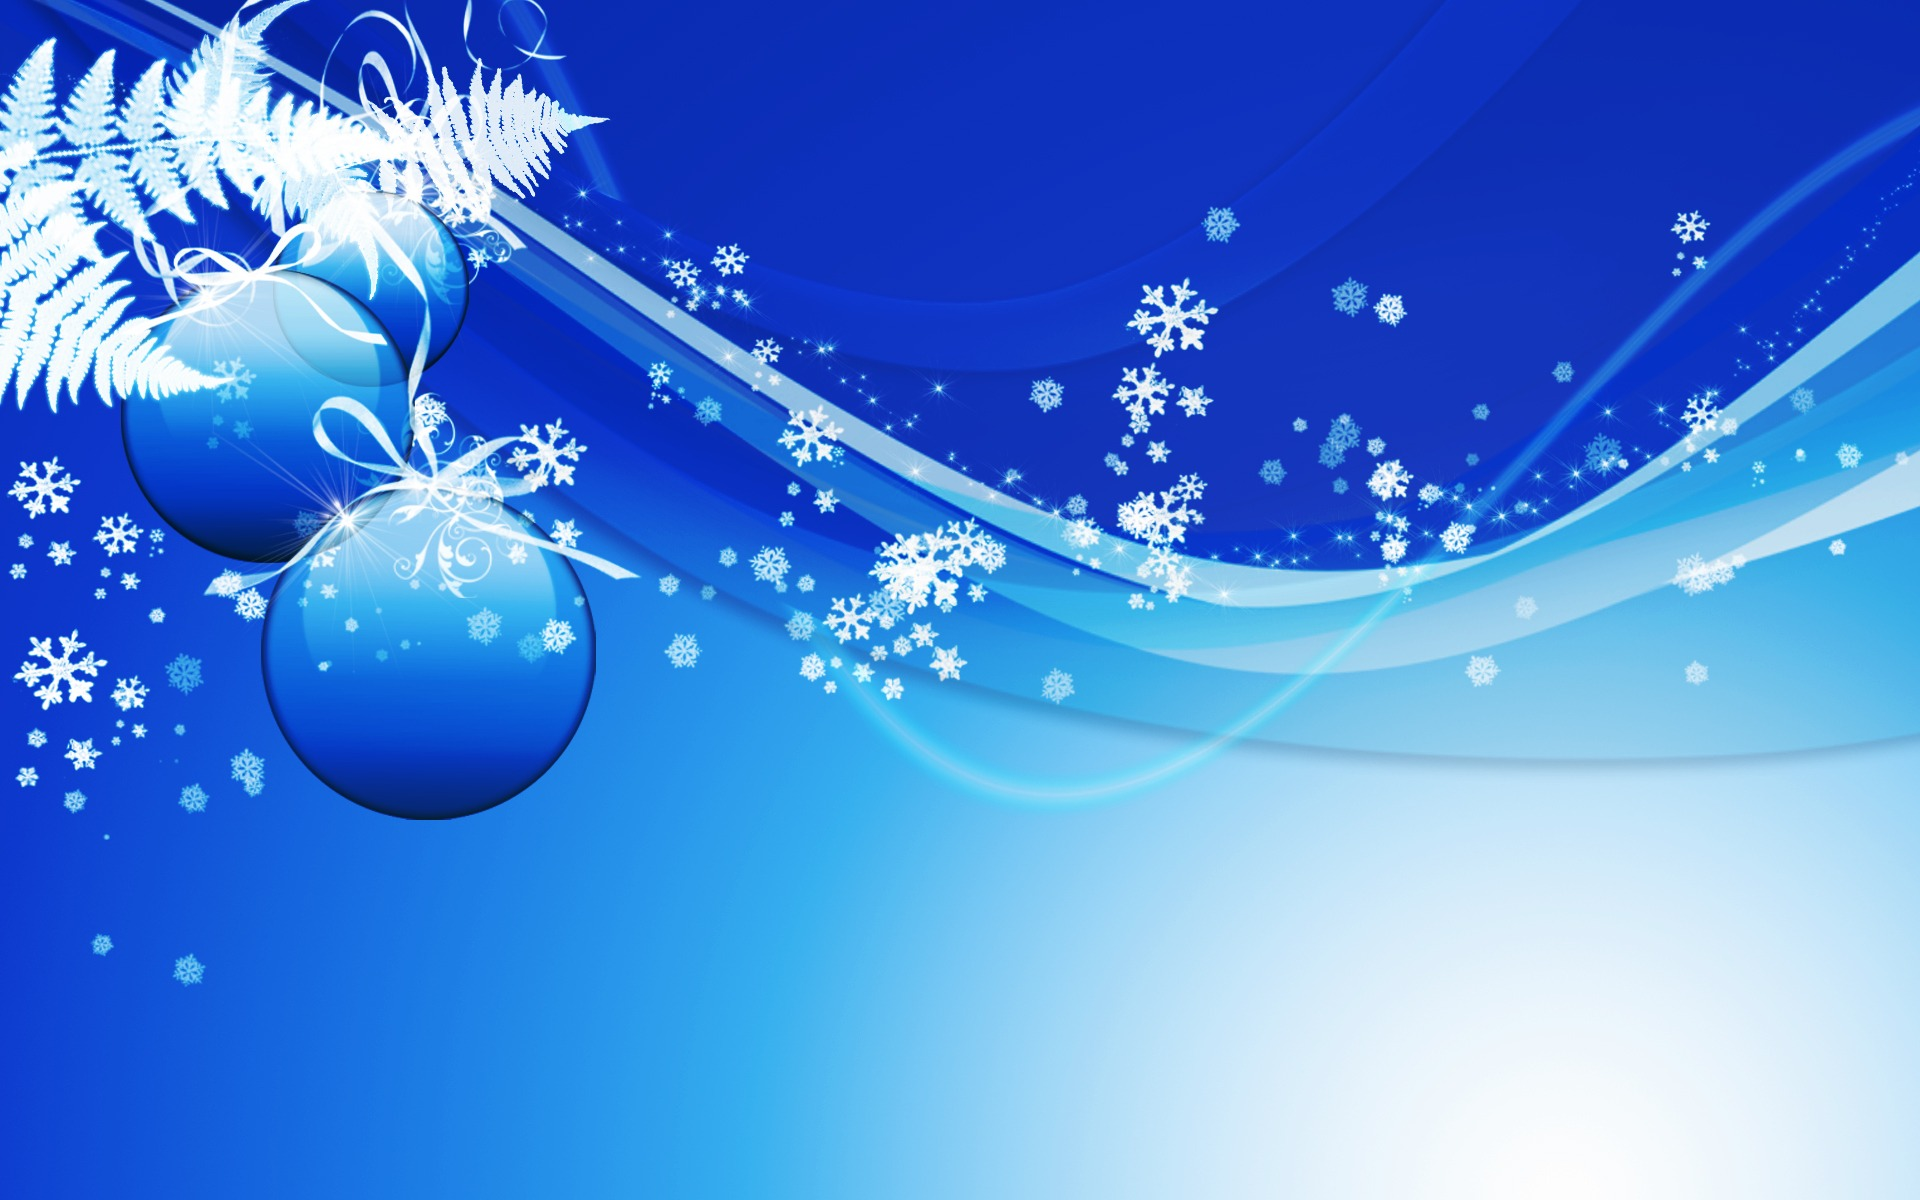 Blue_Christmas_Magic